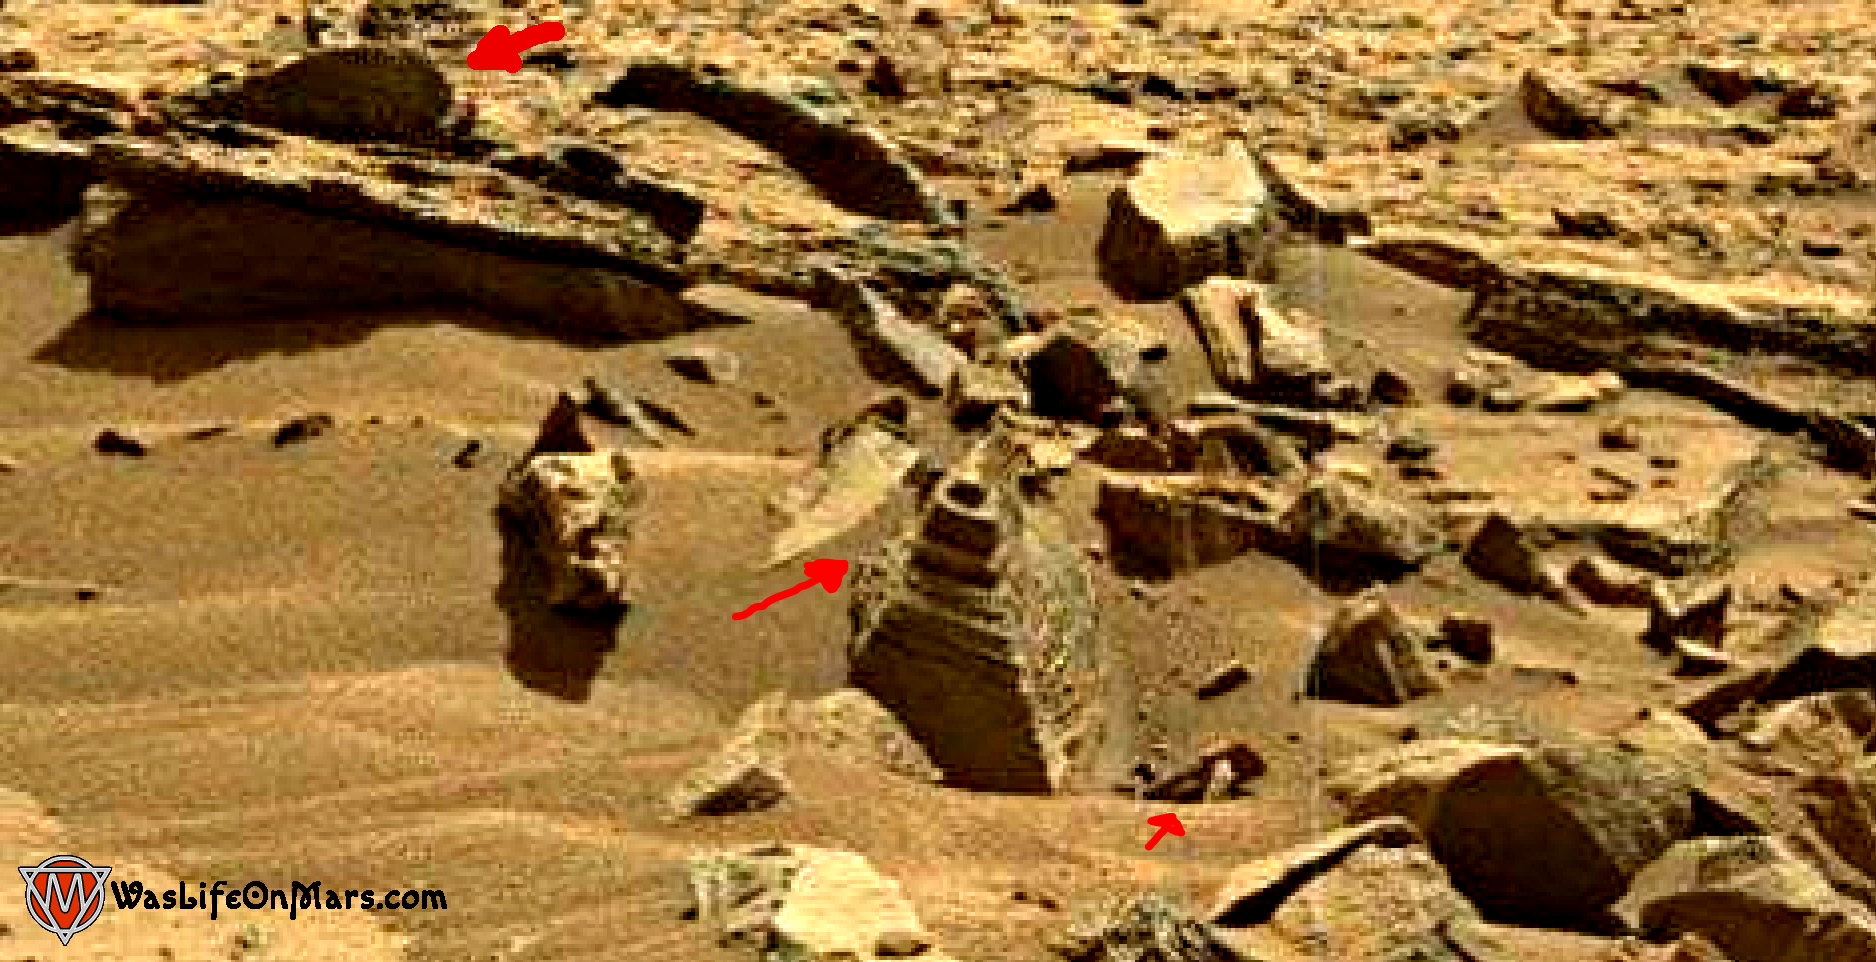 mars sol 1373 anomaly-artifacts 1b was life on mars